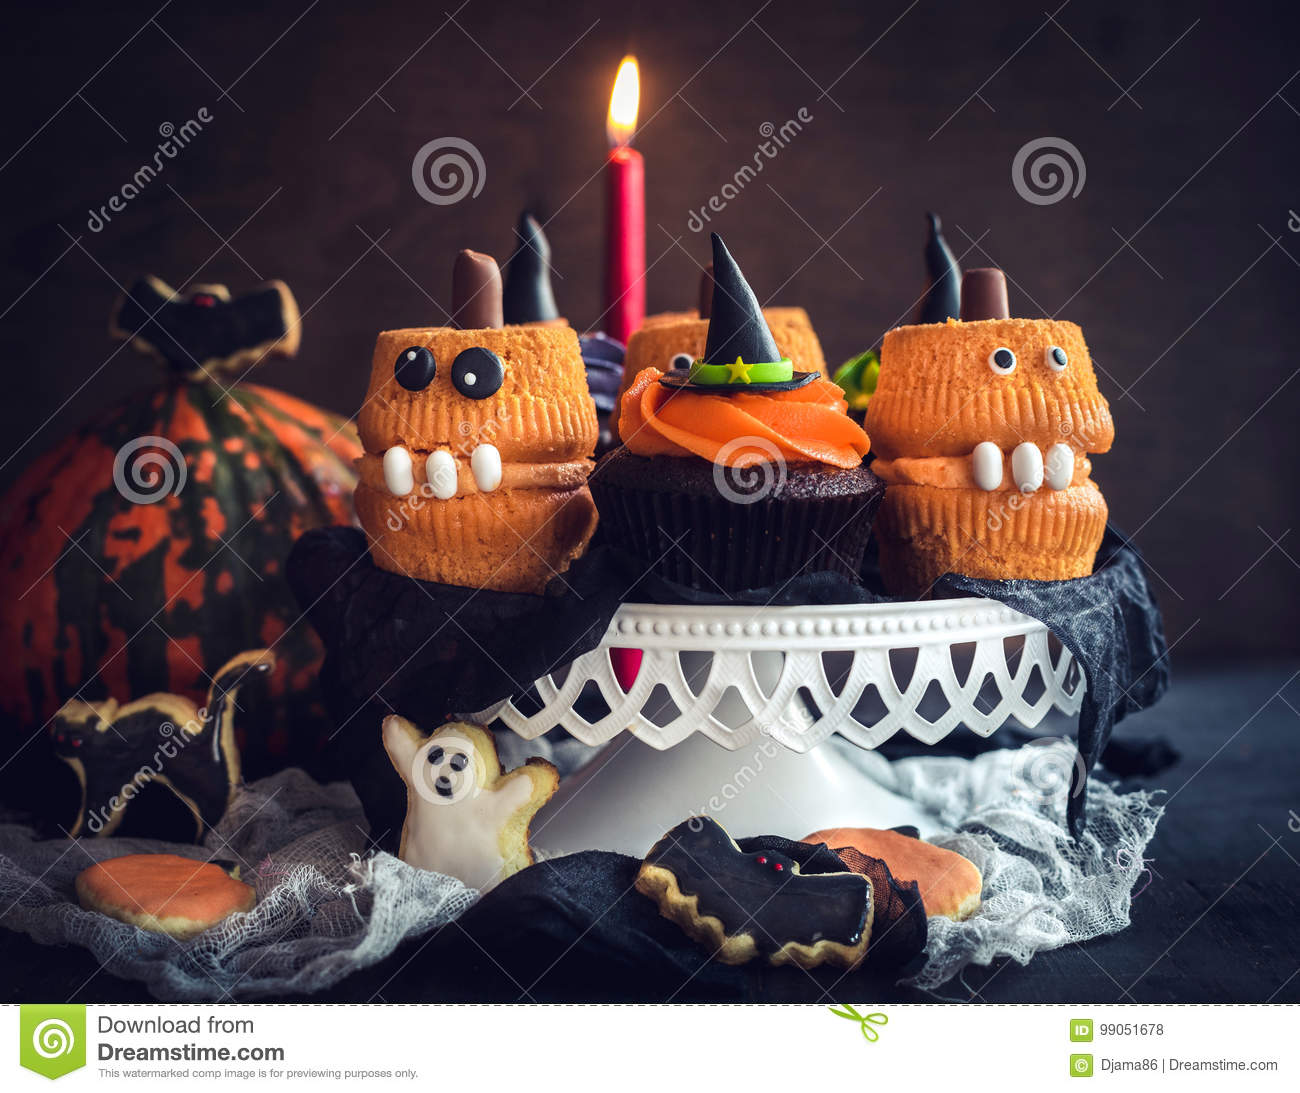 Fine Scary Halloween Cup Cakes Stock Photo Image Of Chocolate 99051678 Personalised Birthday Cards Epsylily Jamesorg